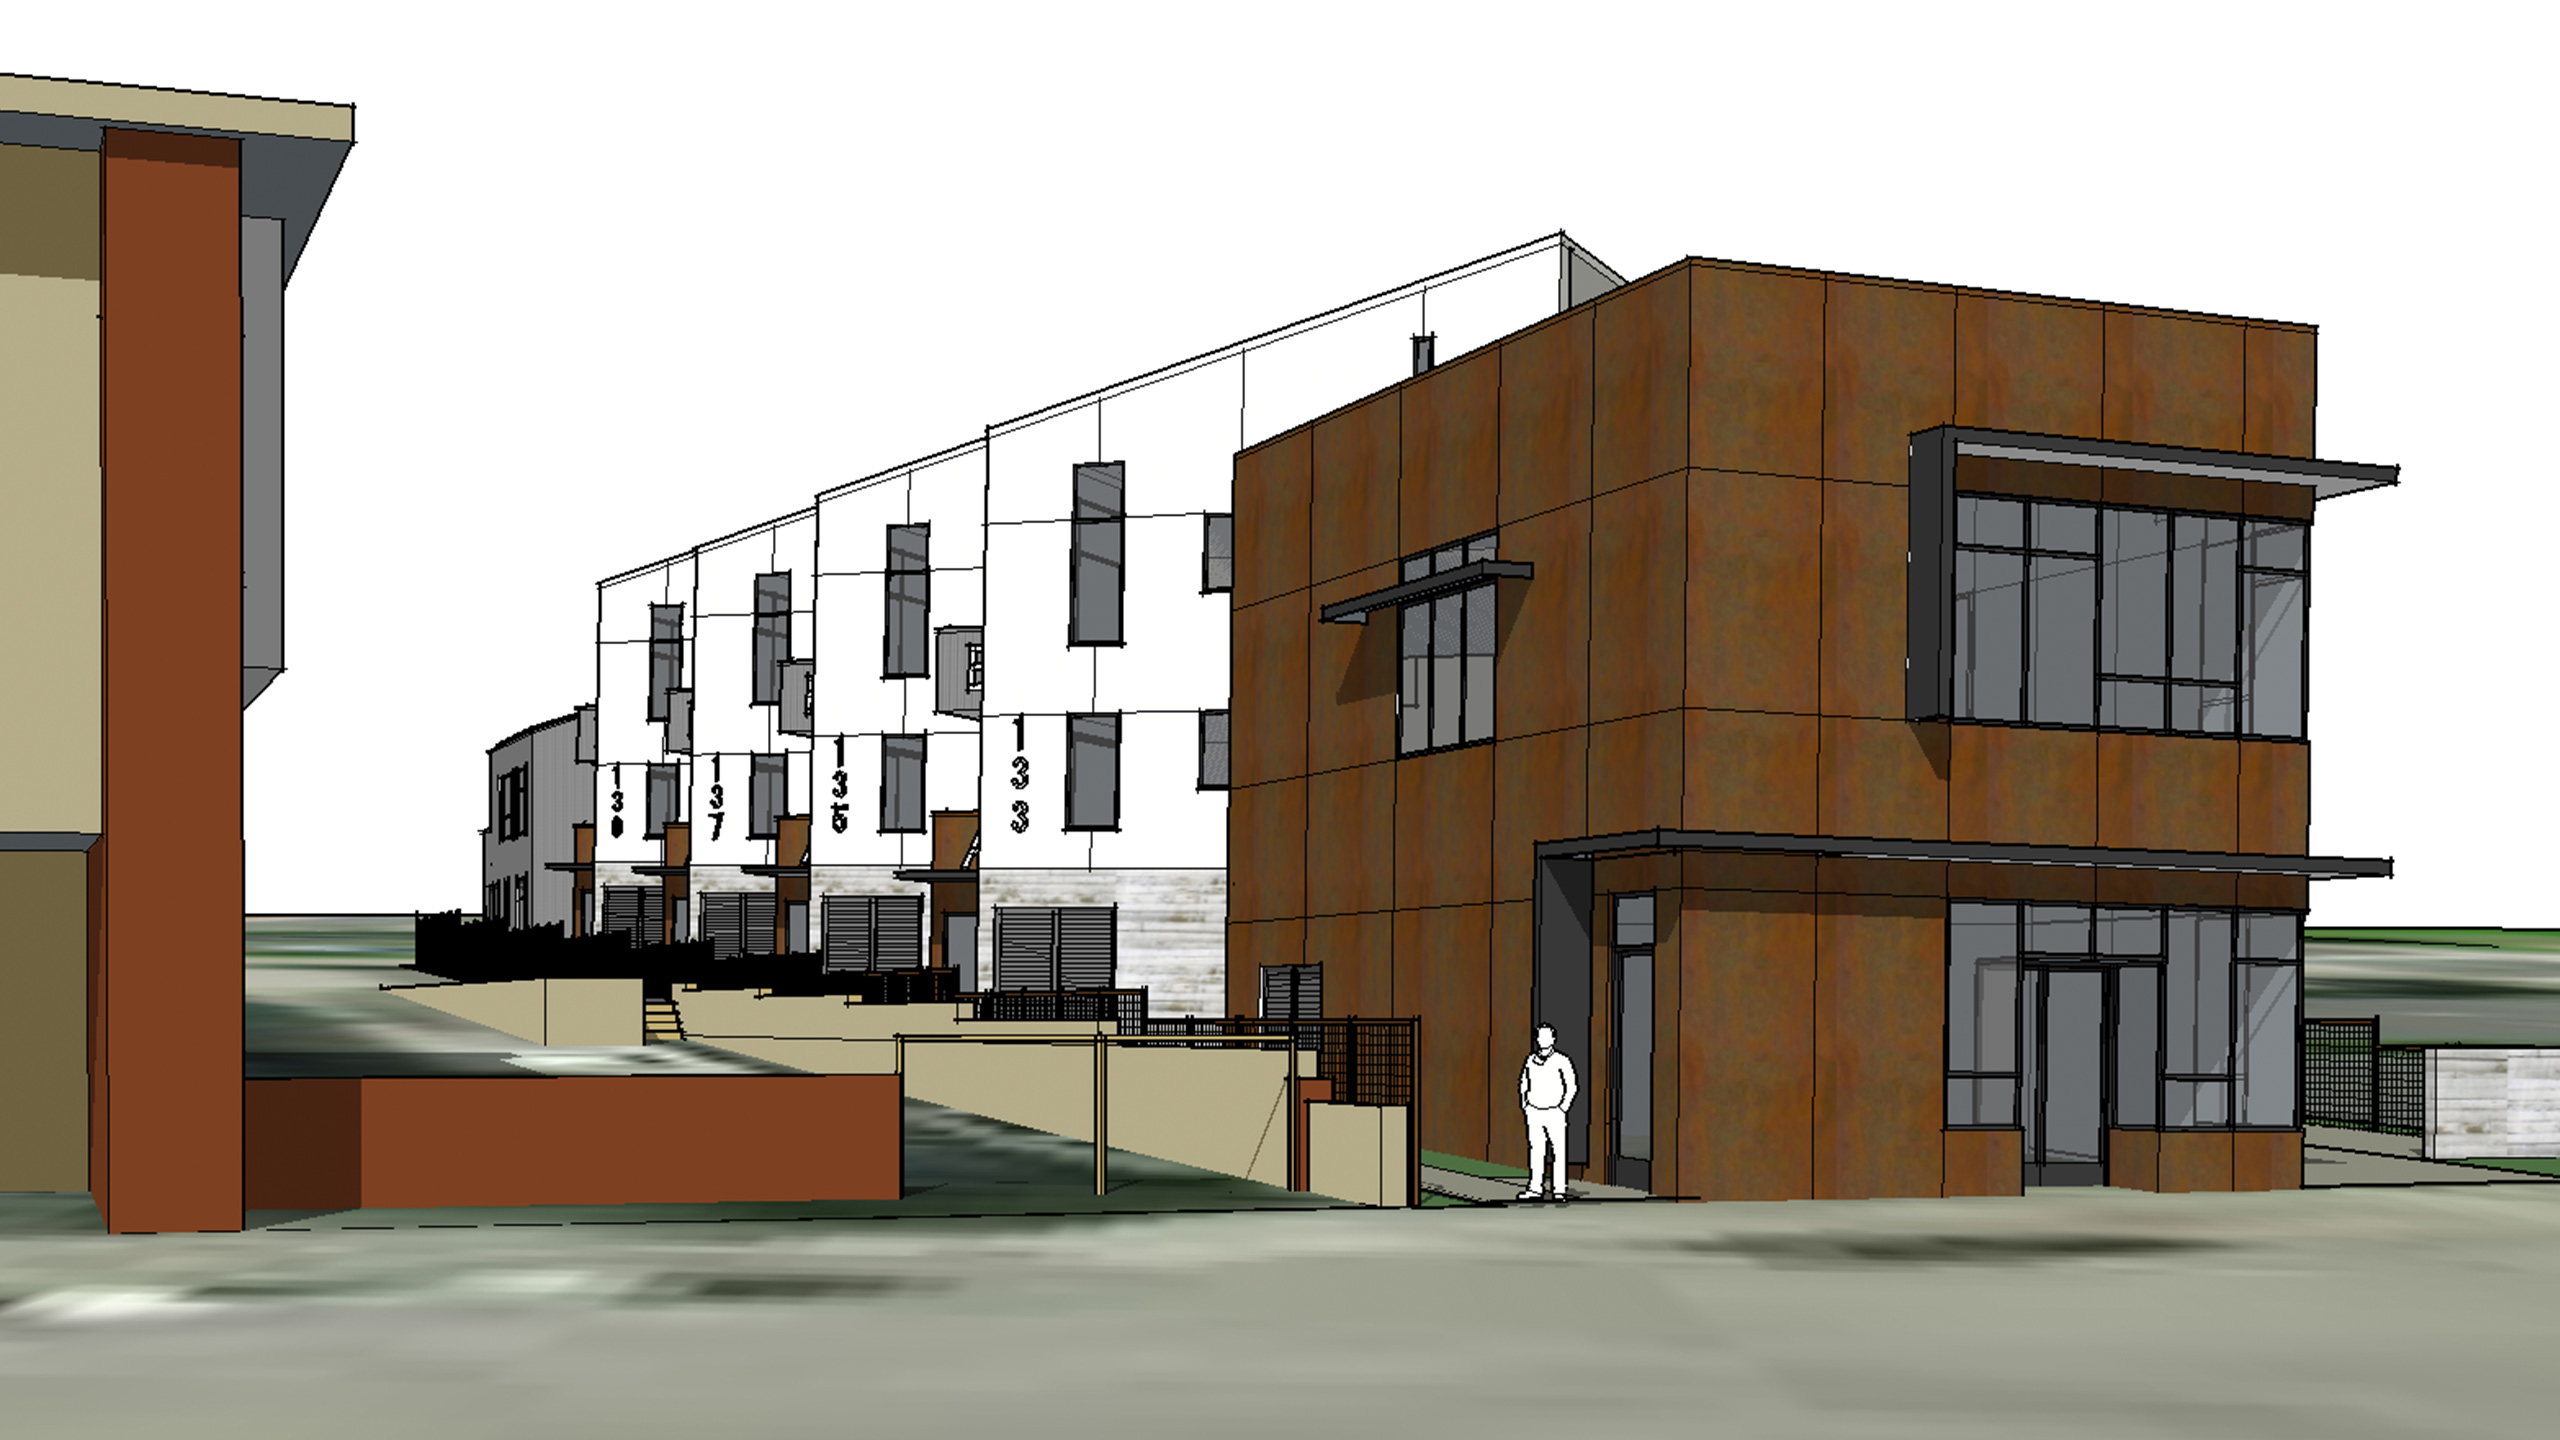 Net-Zero-Multifamily-Sonoma-County-Liberty-Lofts-10-units-modern-architecture-with-corten-steel-siding